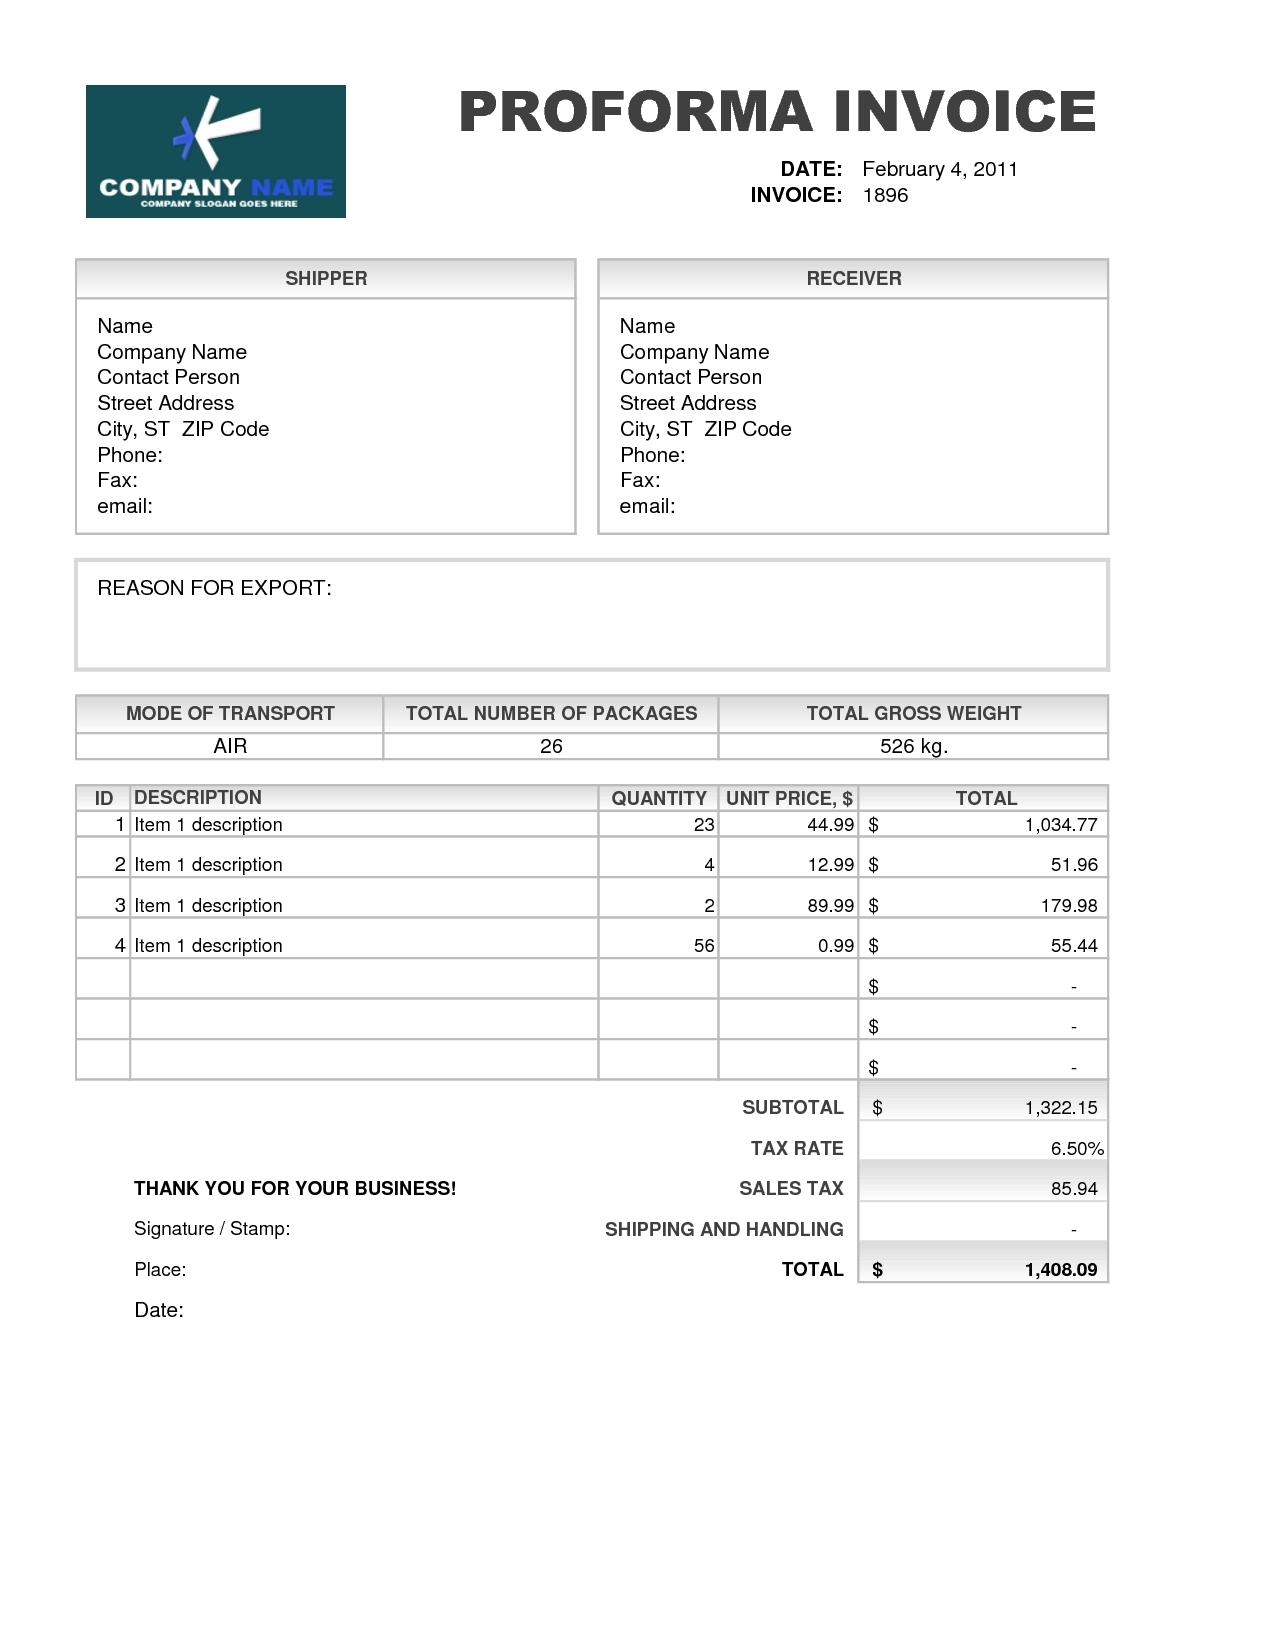 samples of proforma invoice invoice template free 2016 proforma invoices definition